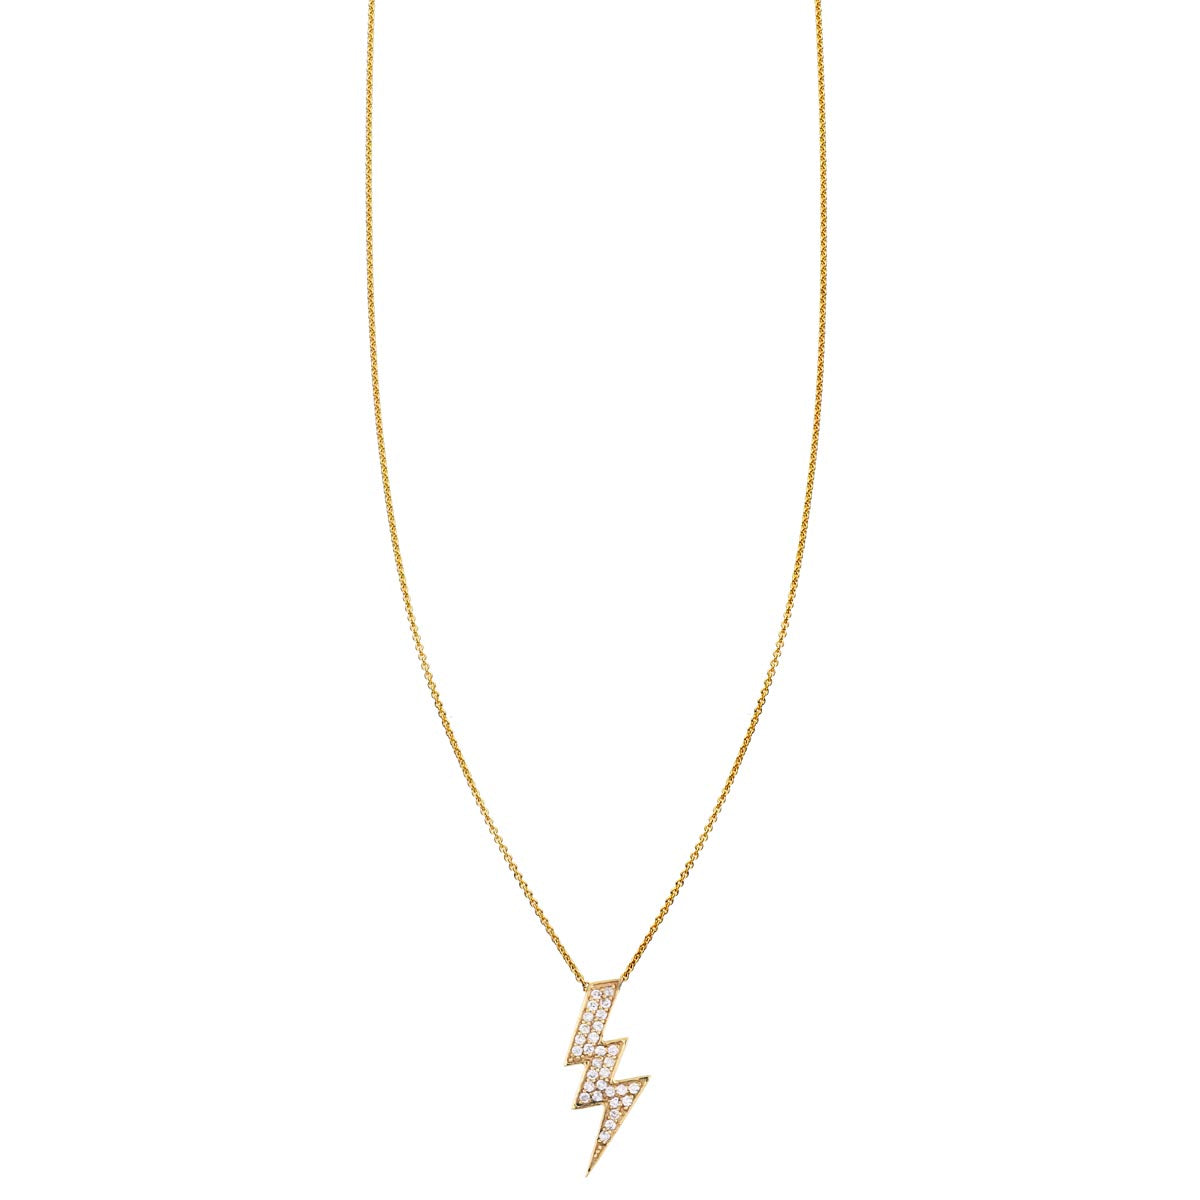 Image of a Large White Diamond Lightning Bolt Necklace